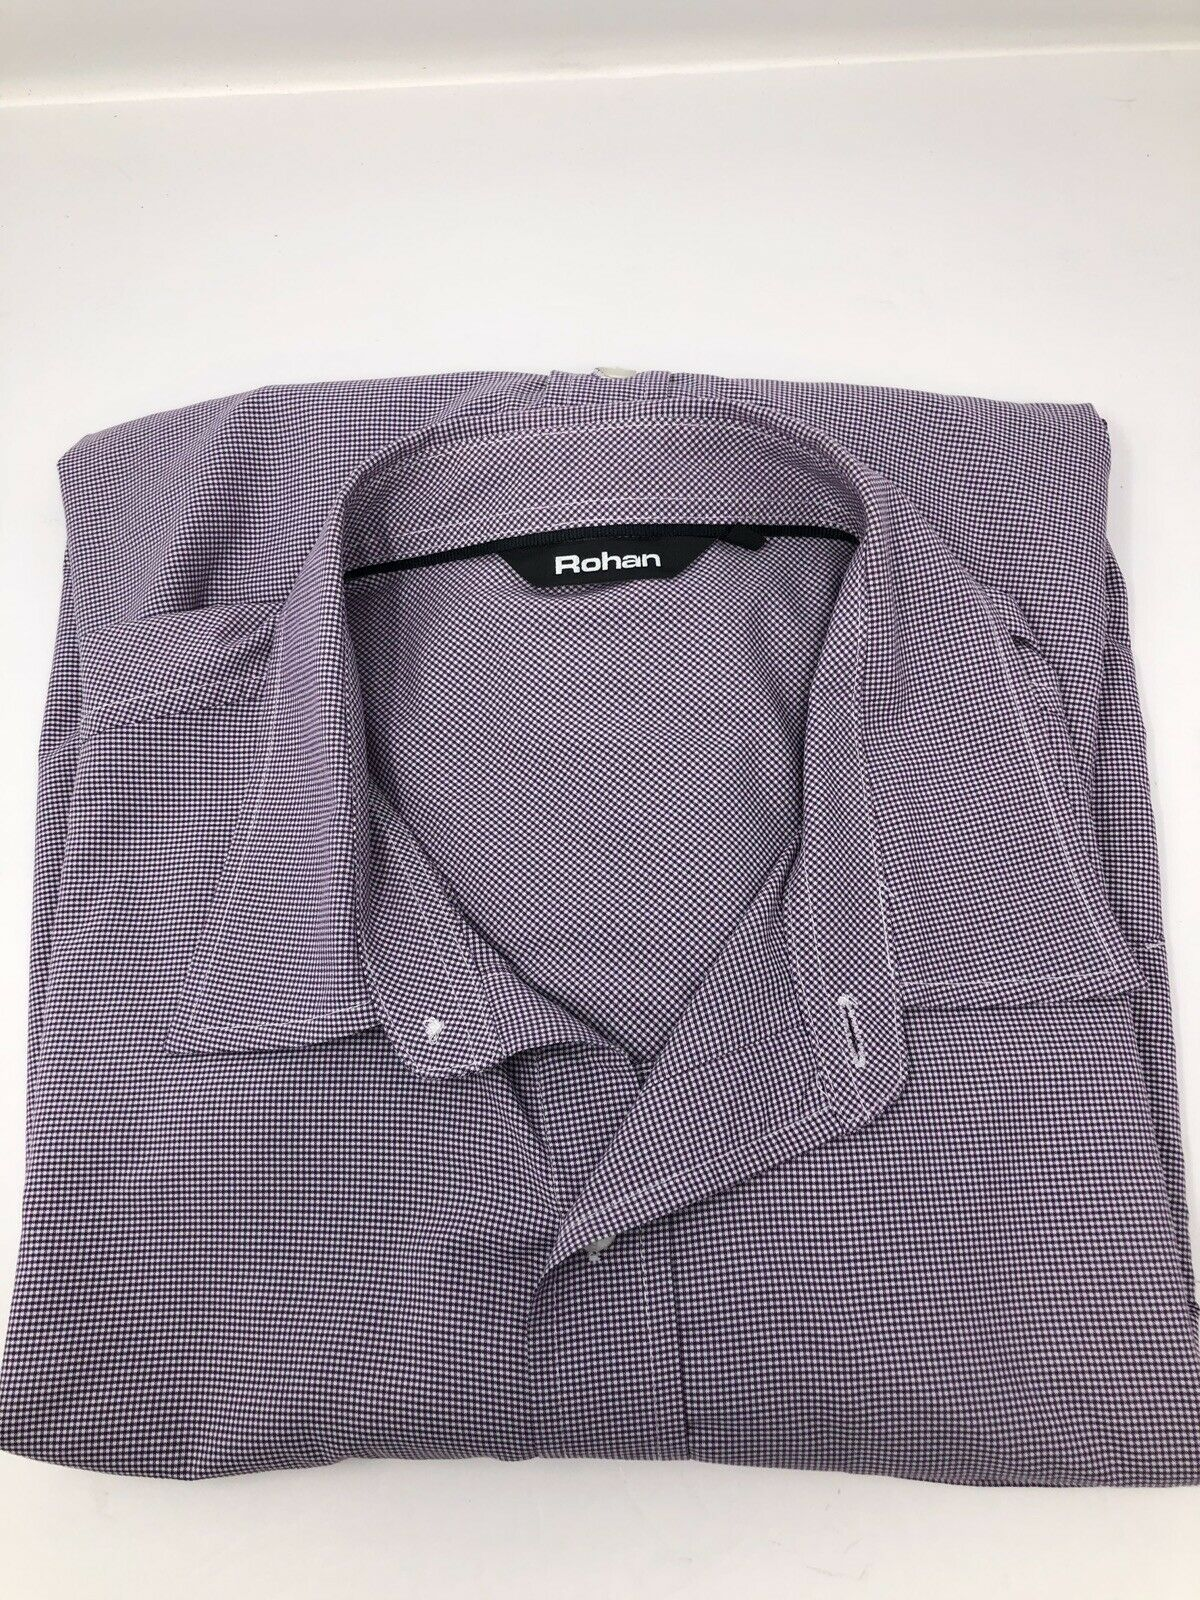 ROHAN DRESS SHIRT Größe LARGE New Without Tag lila Weiß Geometric